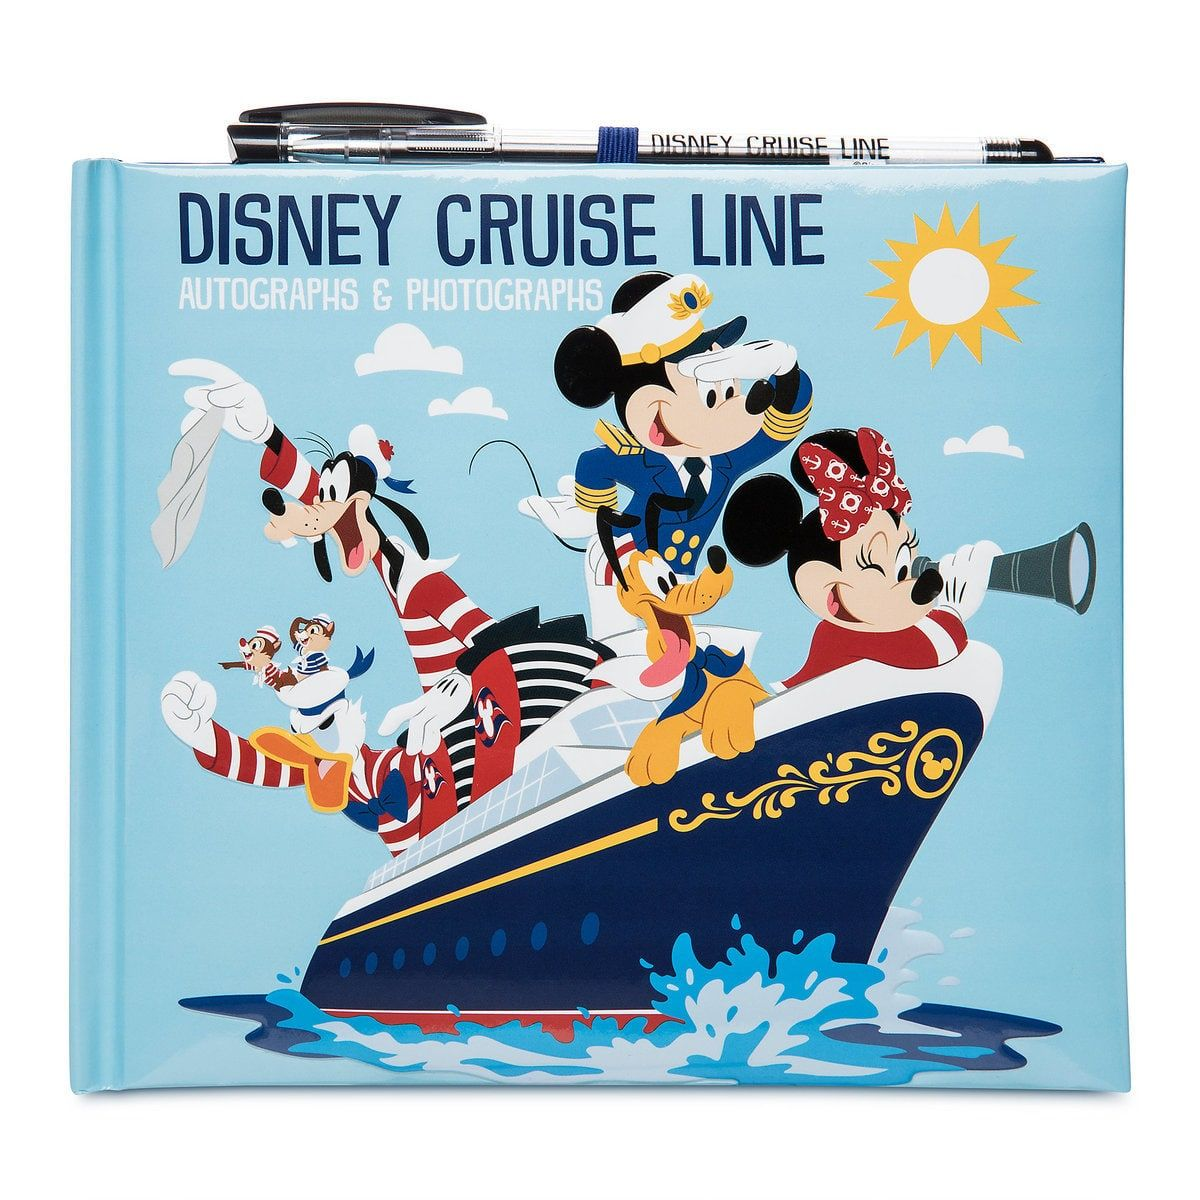 Mickey Mouse And Friends Disney Cruise Line Autograph And Photo